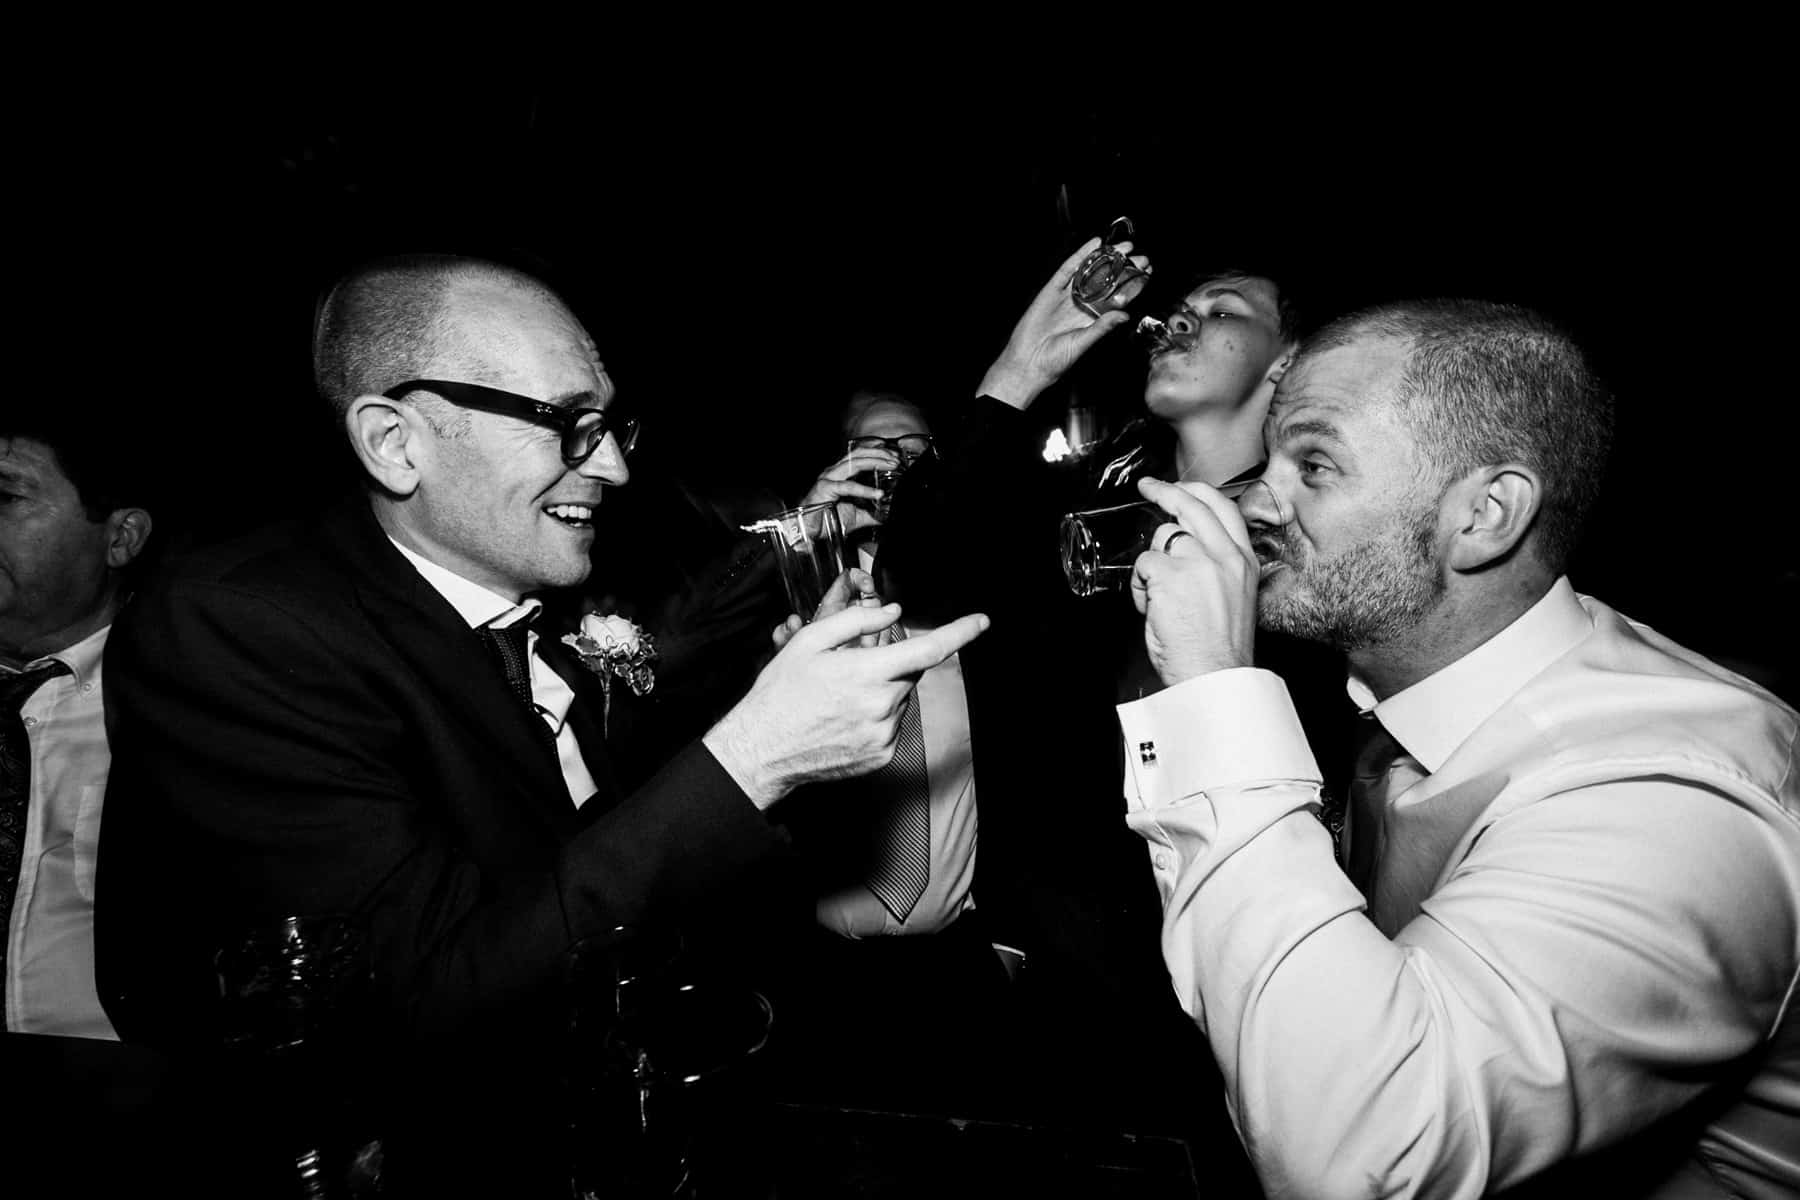 groom and ushers doing shots